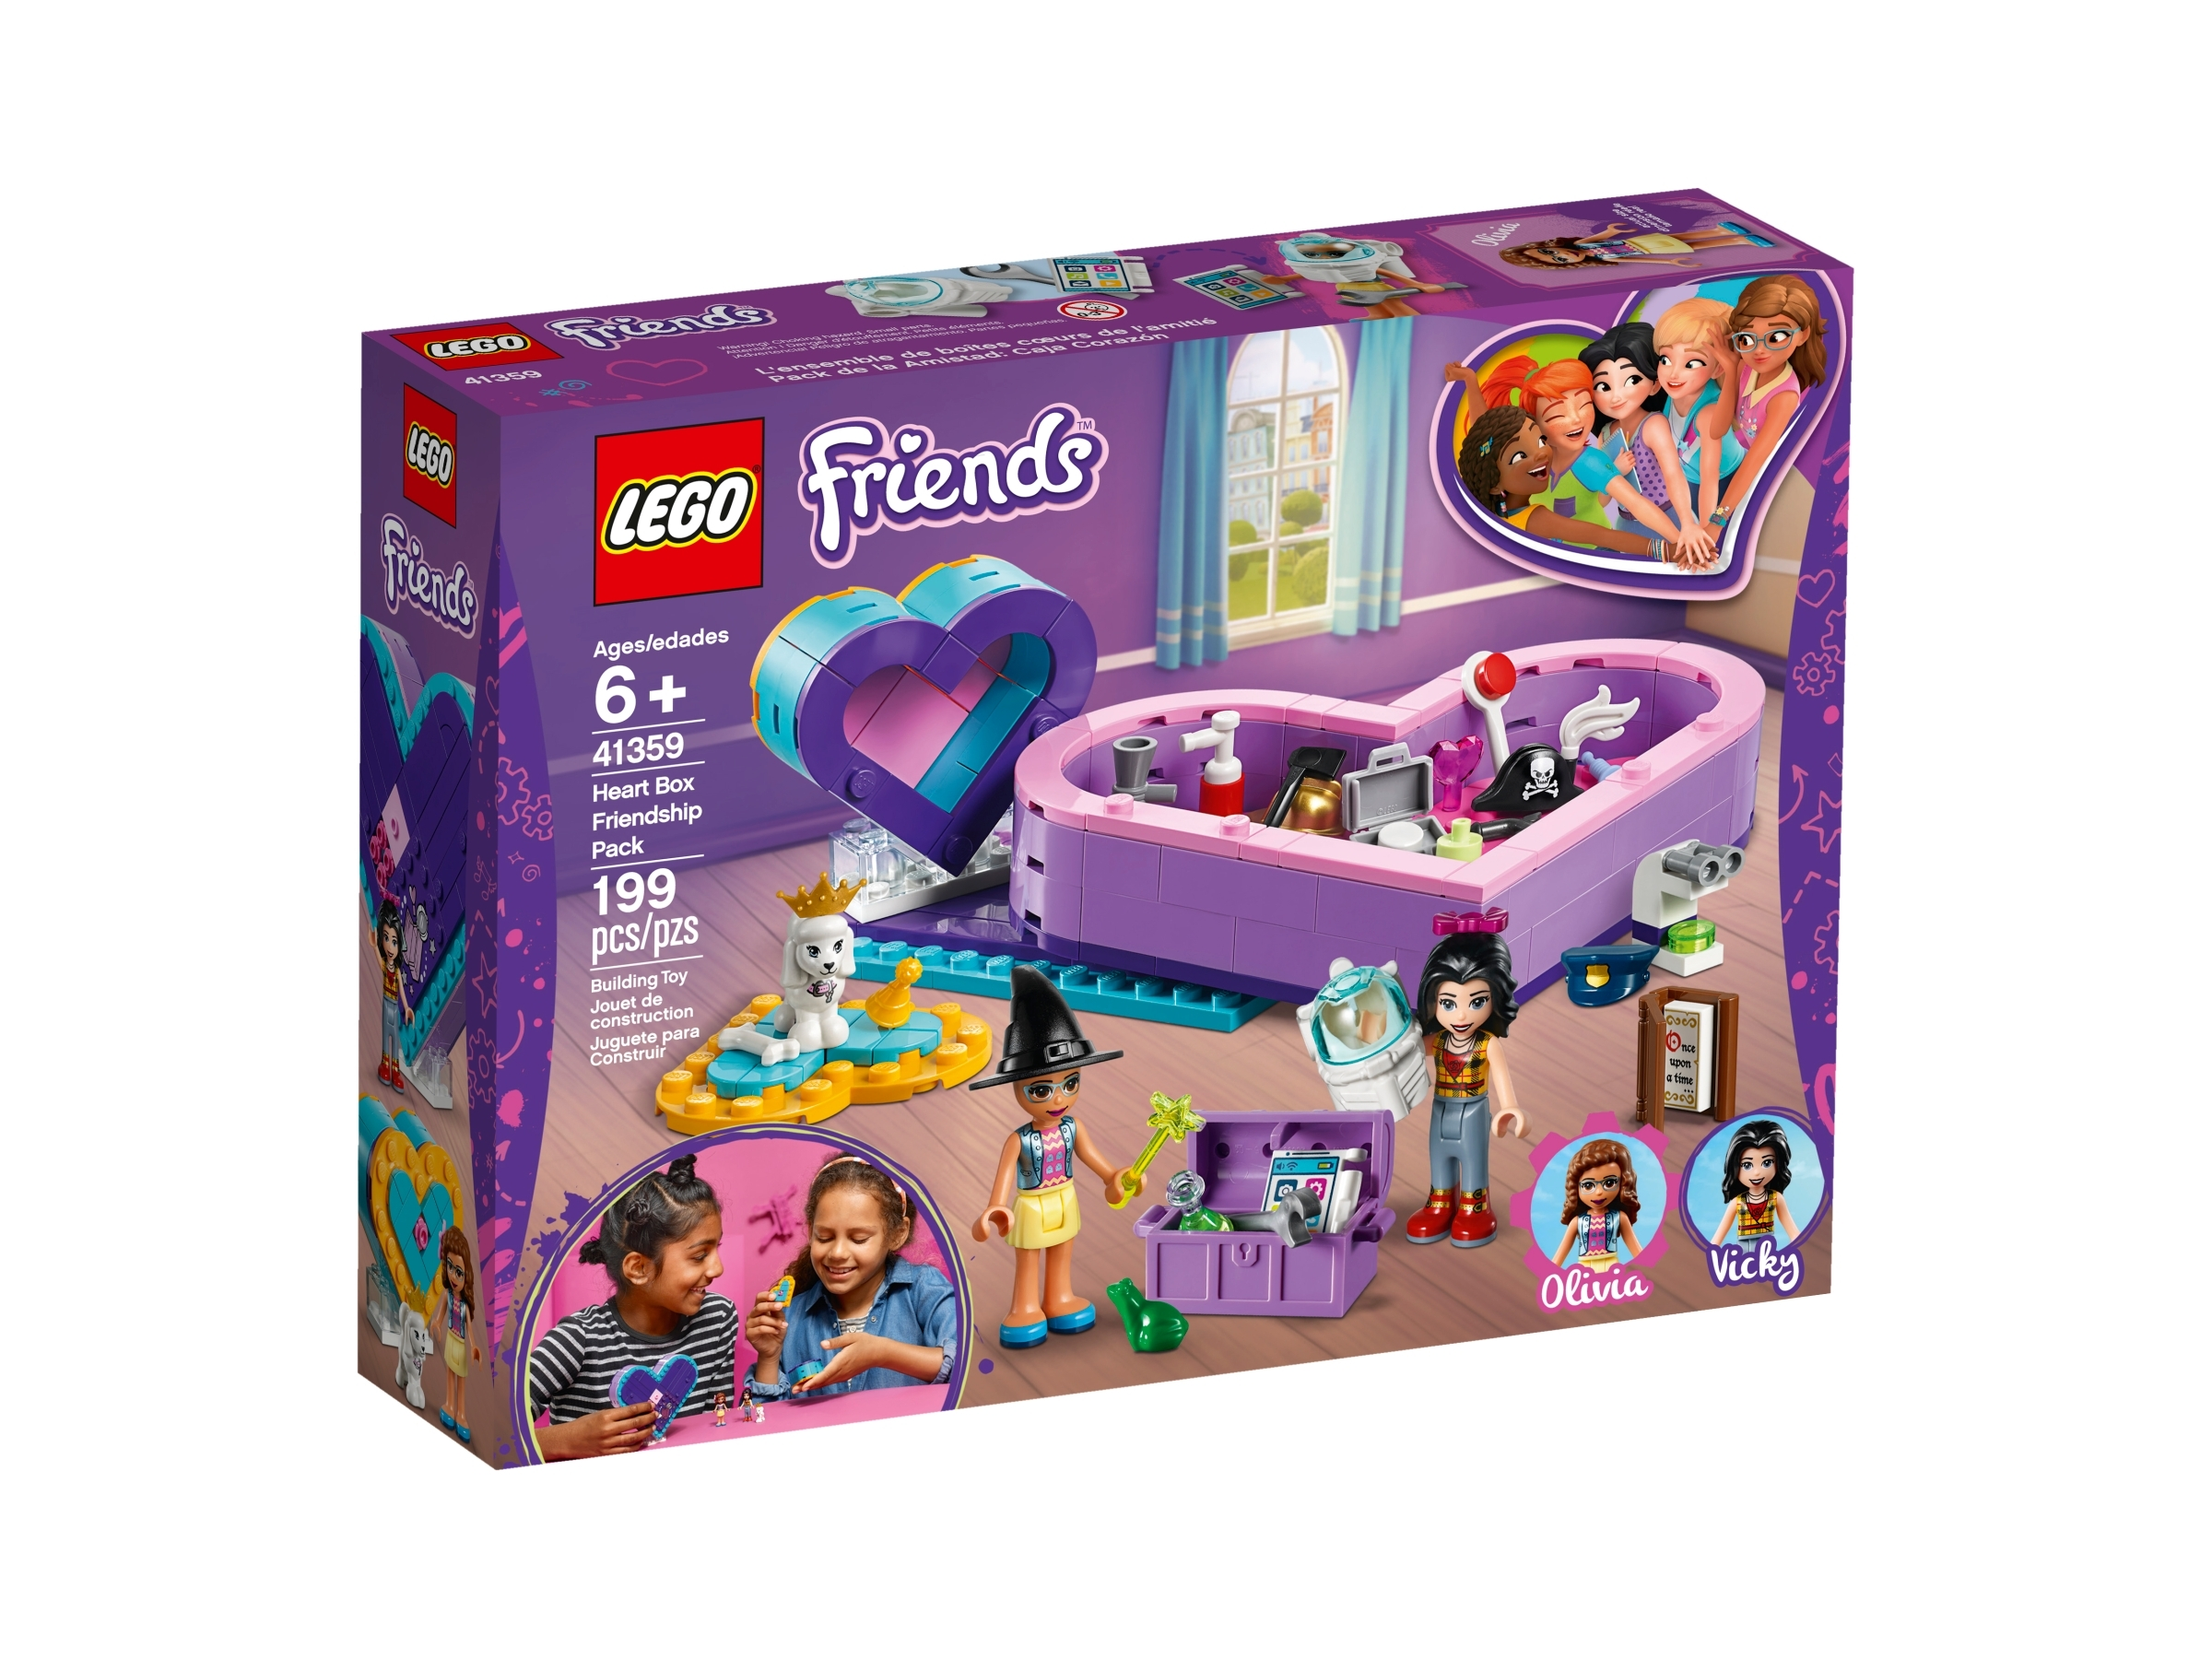 Heart Box Friendship Pack 41359 Friends Buy Online At The Official Lego Shop Us